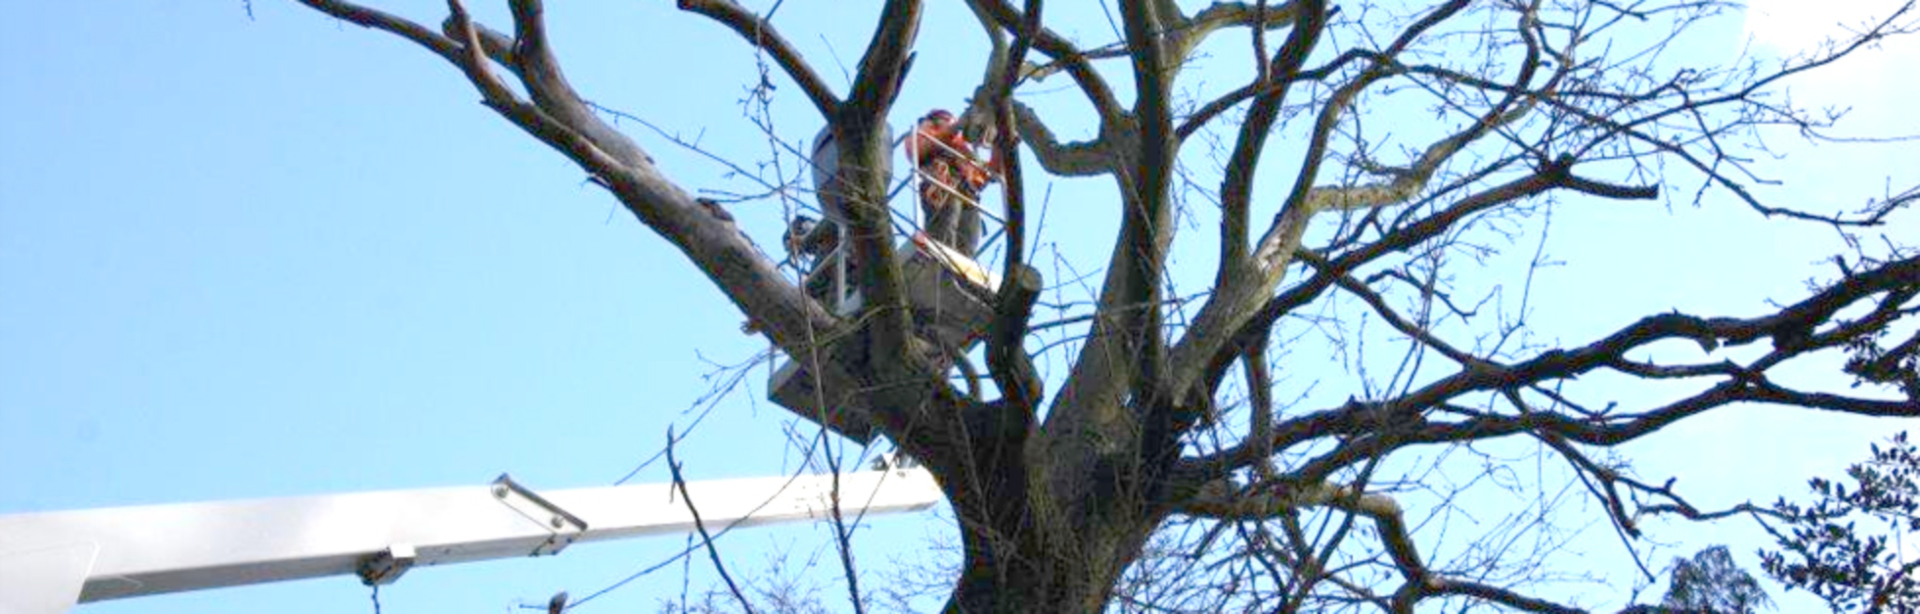 Tree surgeon performing work on a tree.